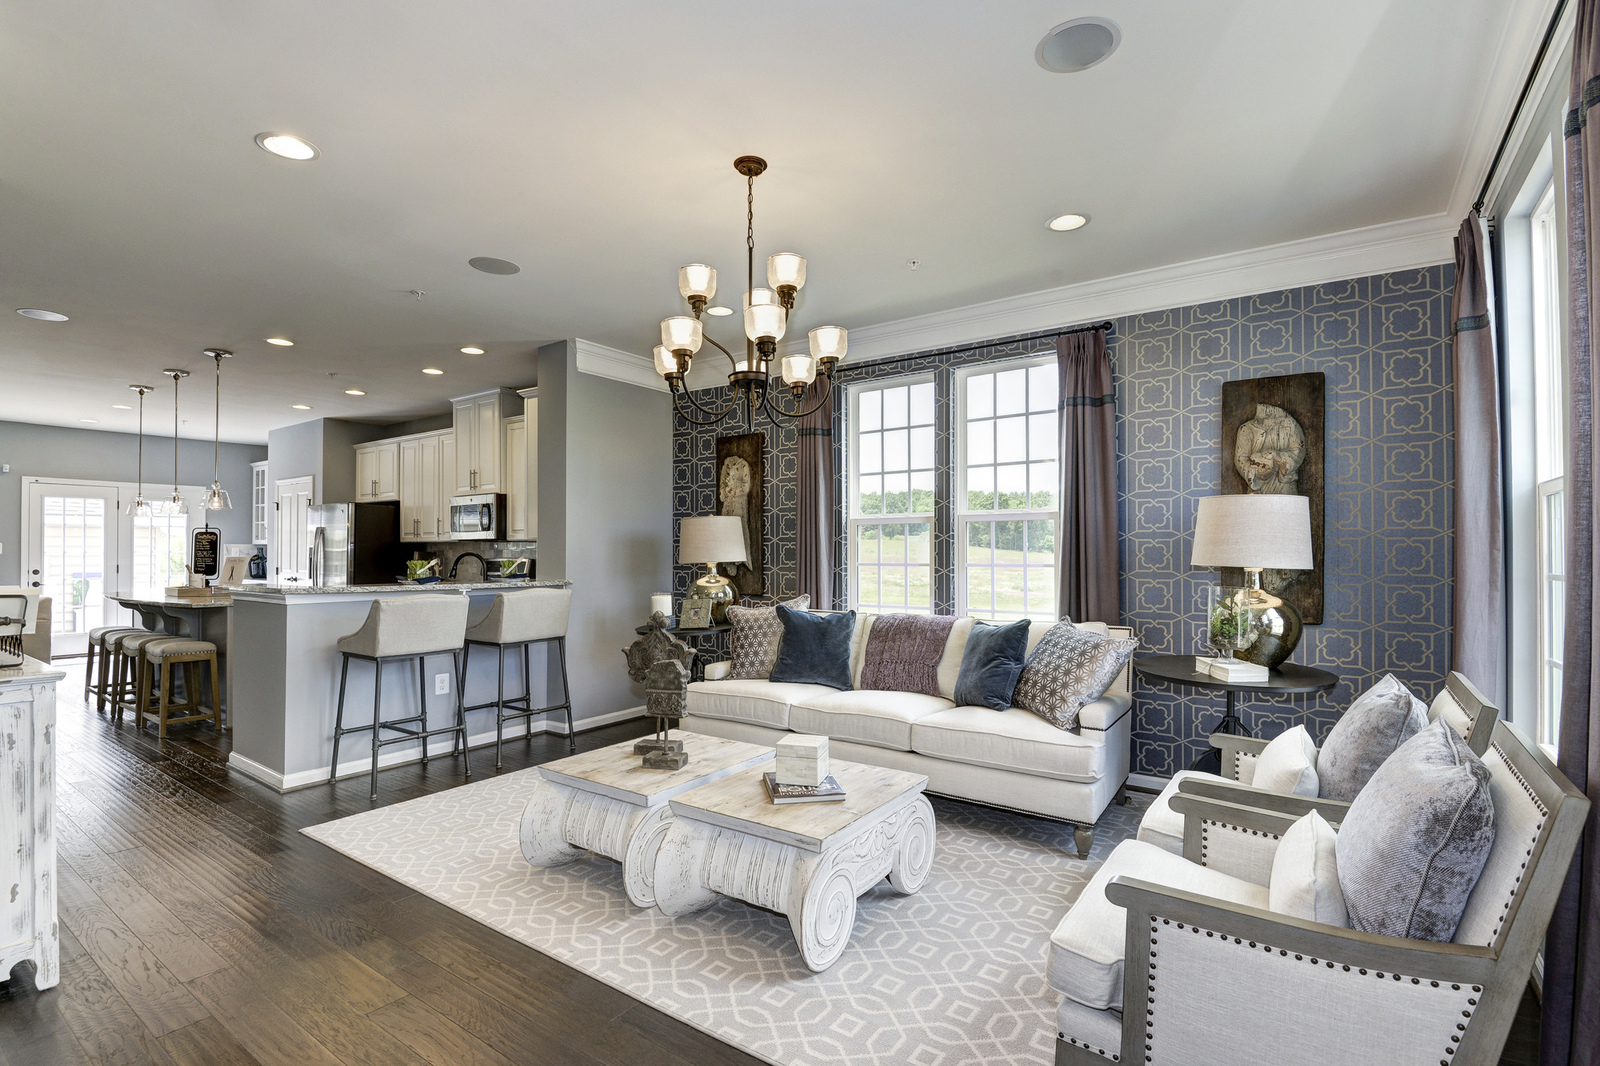 Landsdale Townhomes